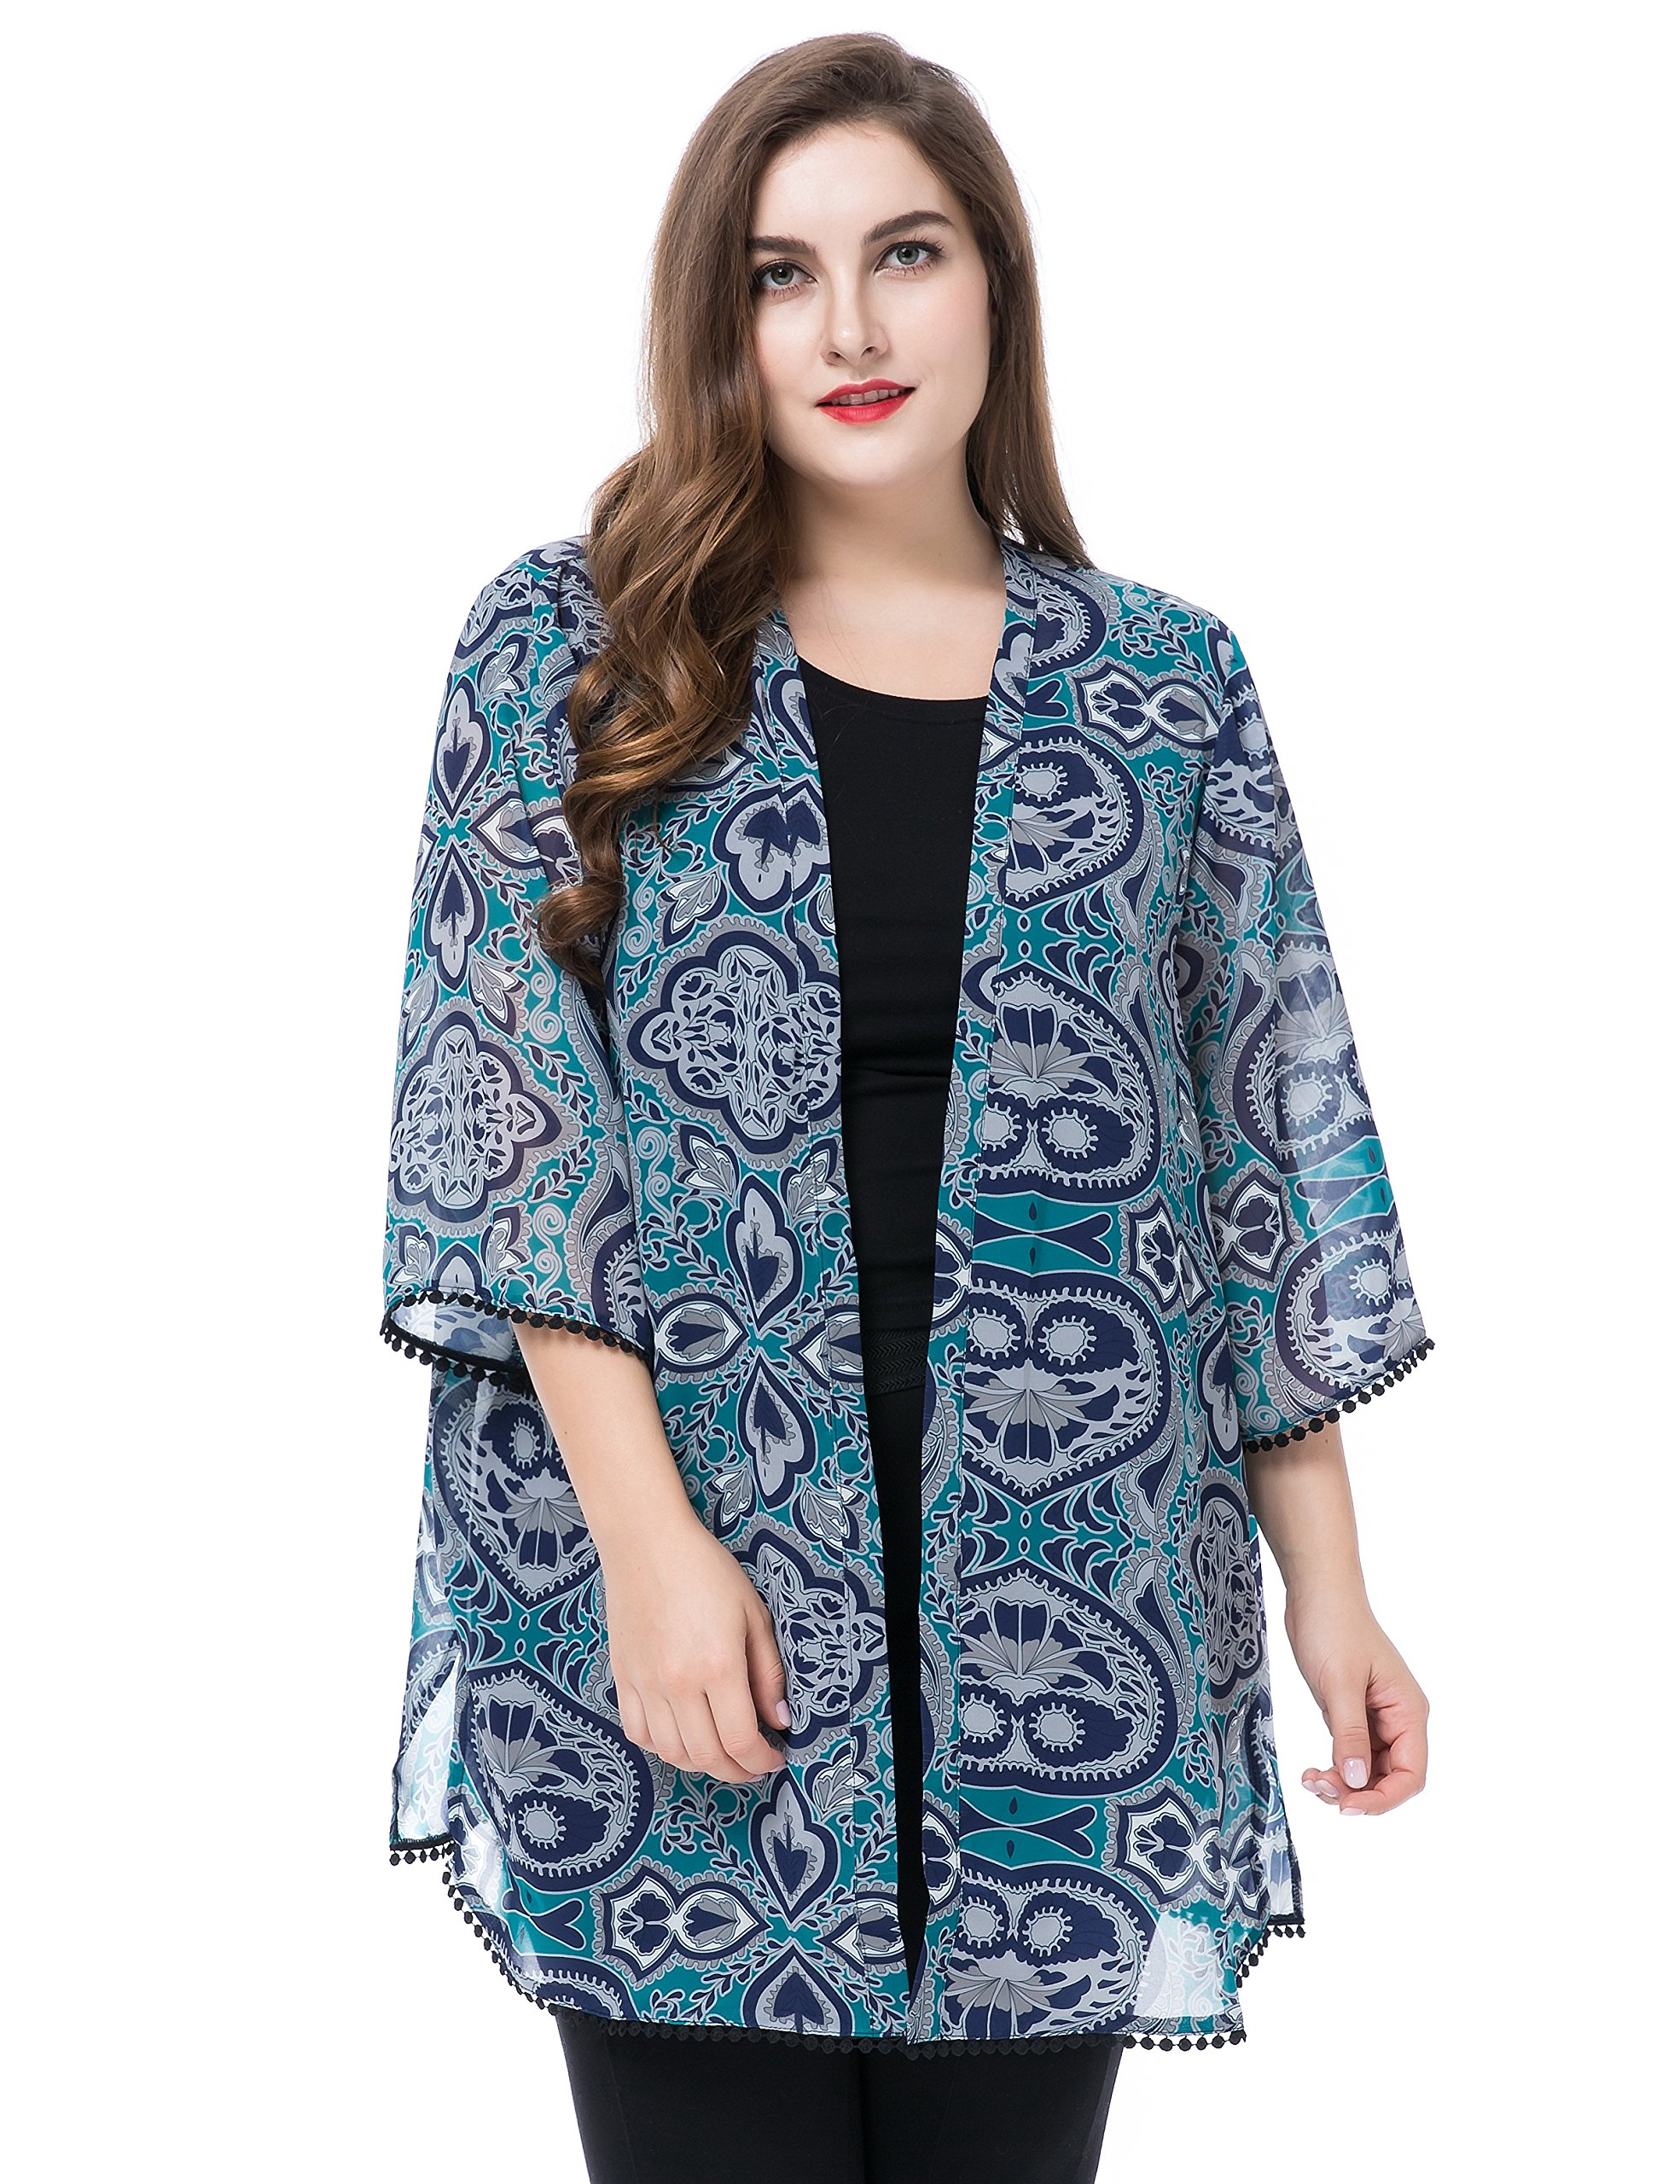 Chicwe Women's Plus Size Floral Printed Chiffon Summer Cover up with Trim Cuff & Hem- Kimono Kaftan Style Open Front Multi Teal 24